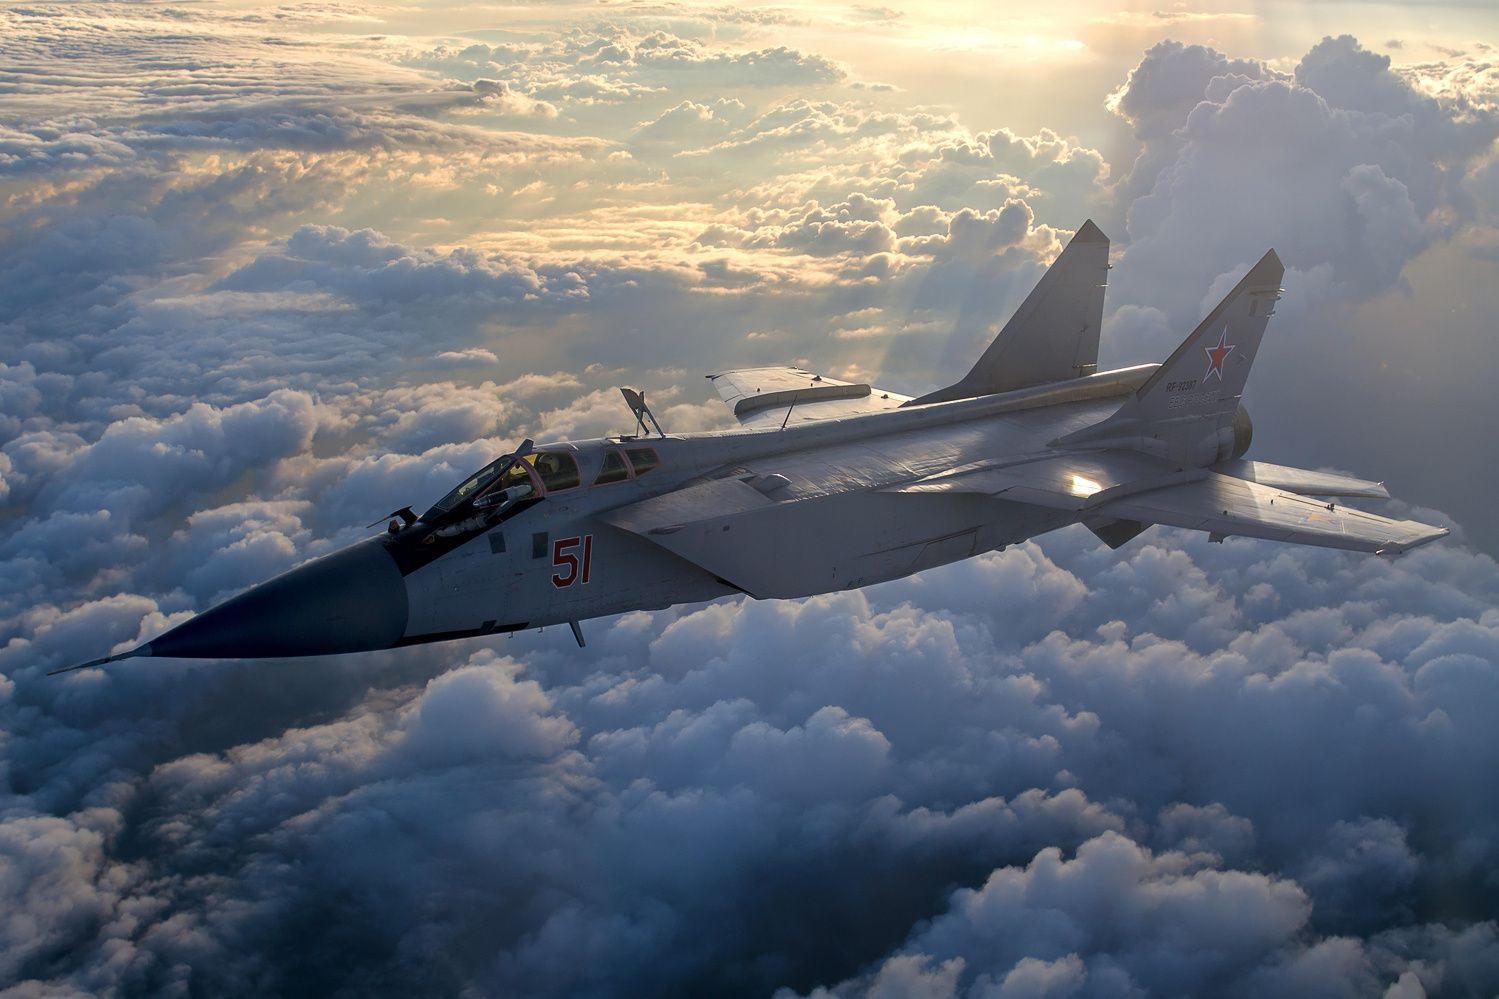 MiG 31 Foxhound MilitaryImagesNet 1499x999